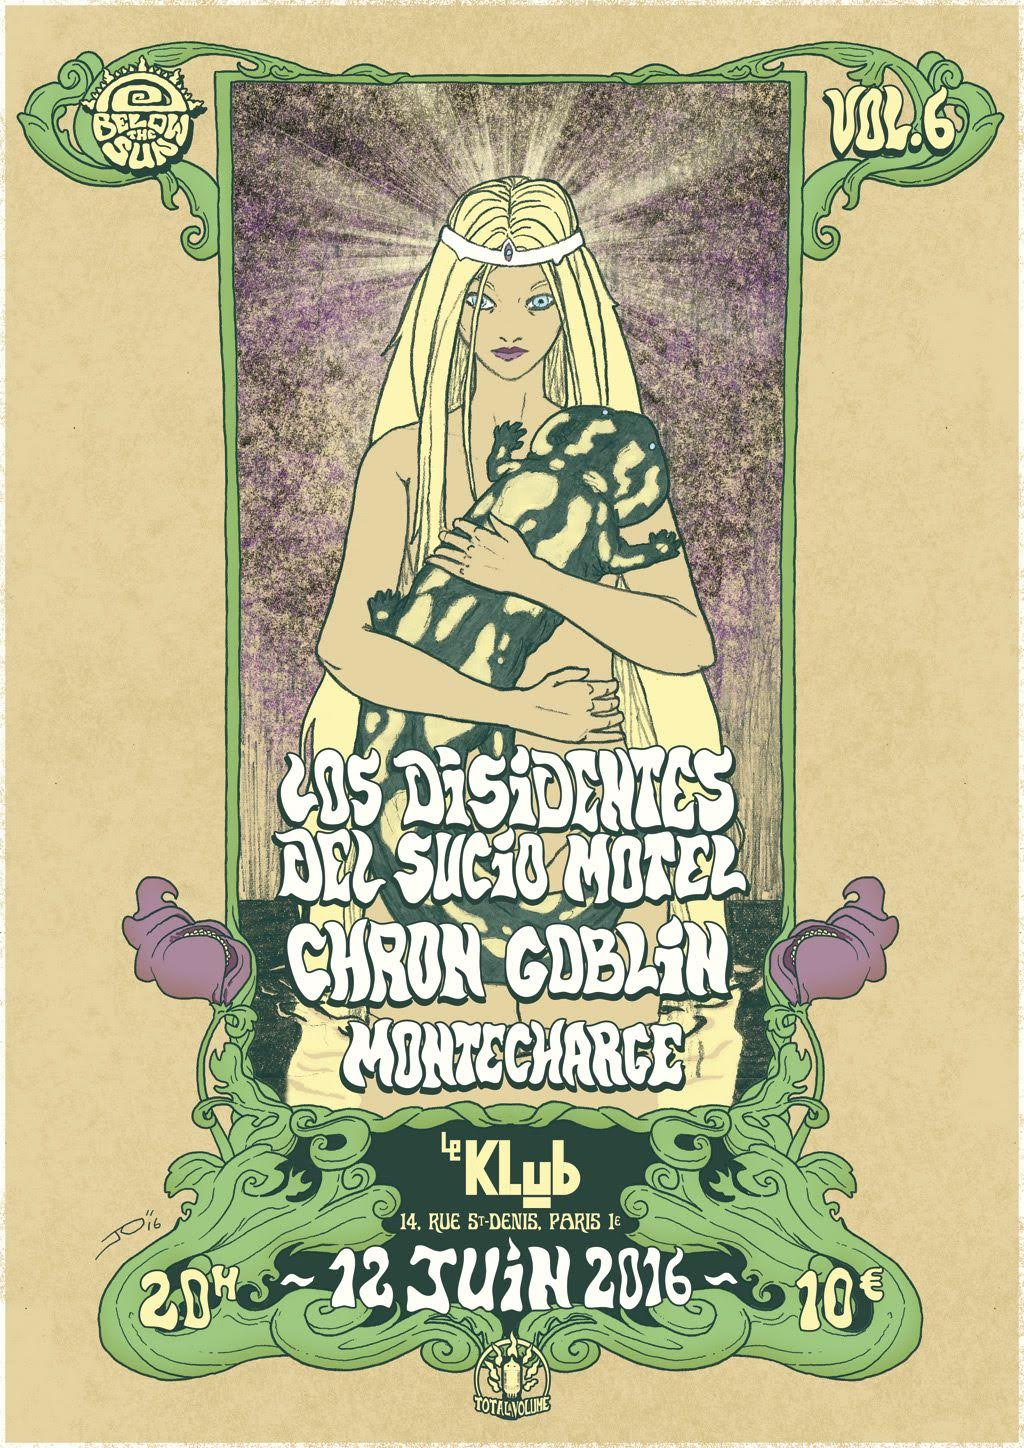 BELOW THE SUN #6 : LOS DISIDENTES DEL SUCIO MOTEL + CHRON GOBLIN + MONTECHARGE